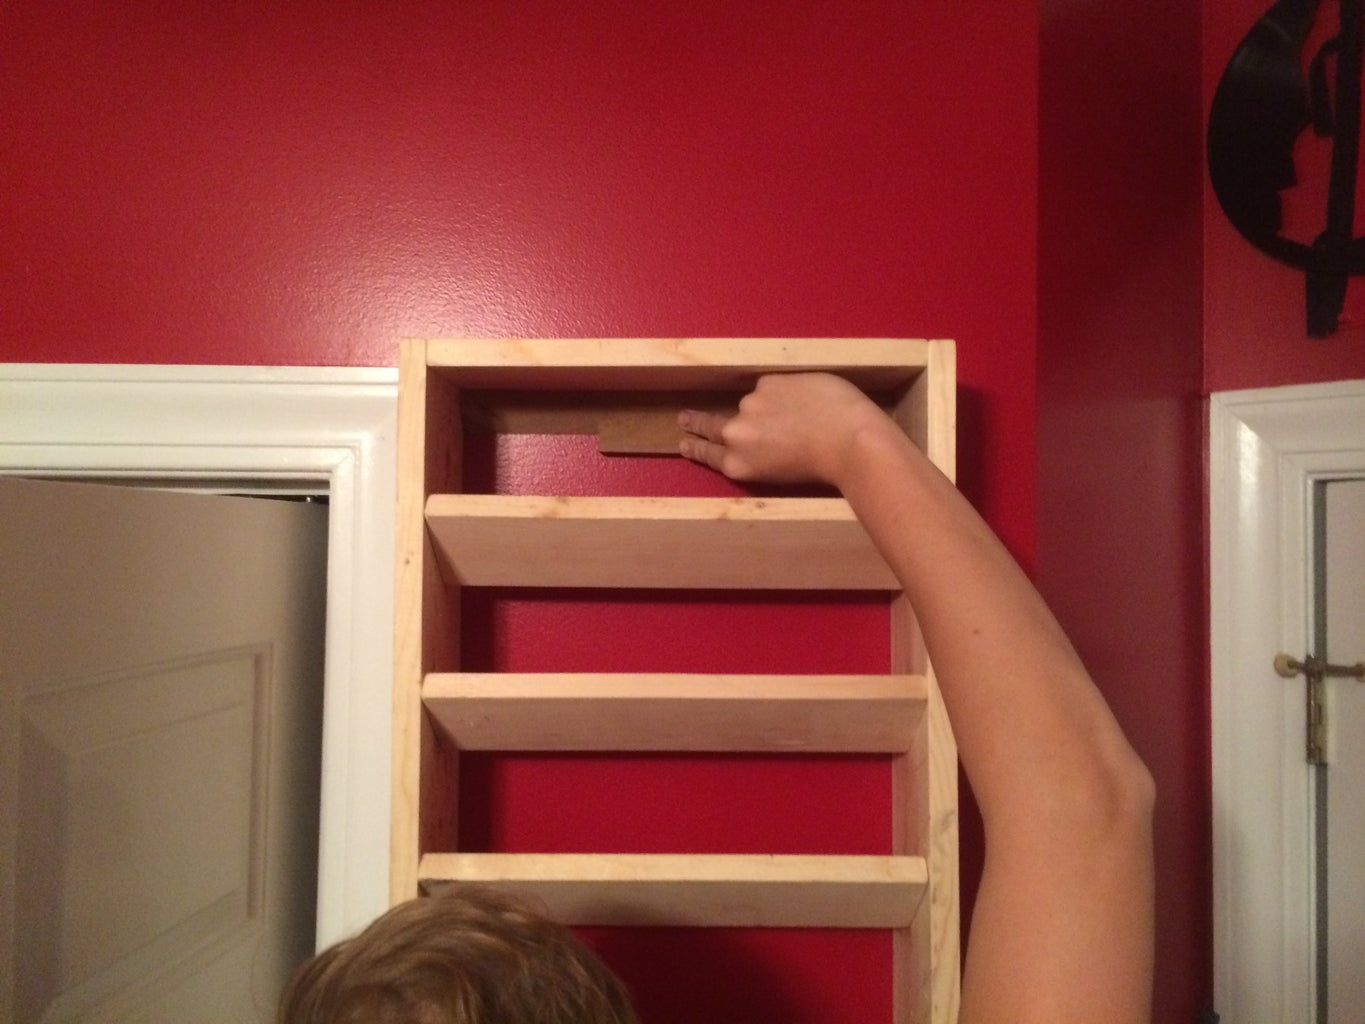 Mounting the Rack With French Cleats